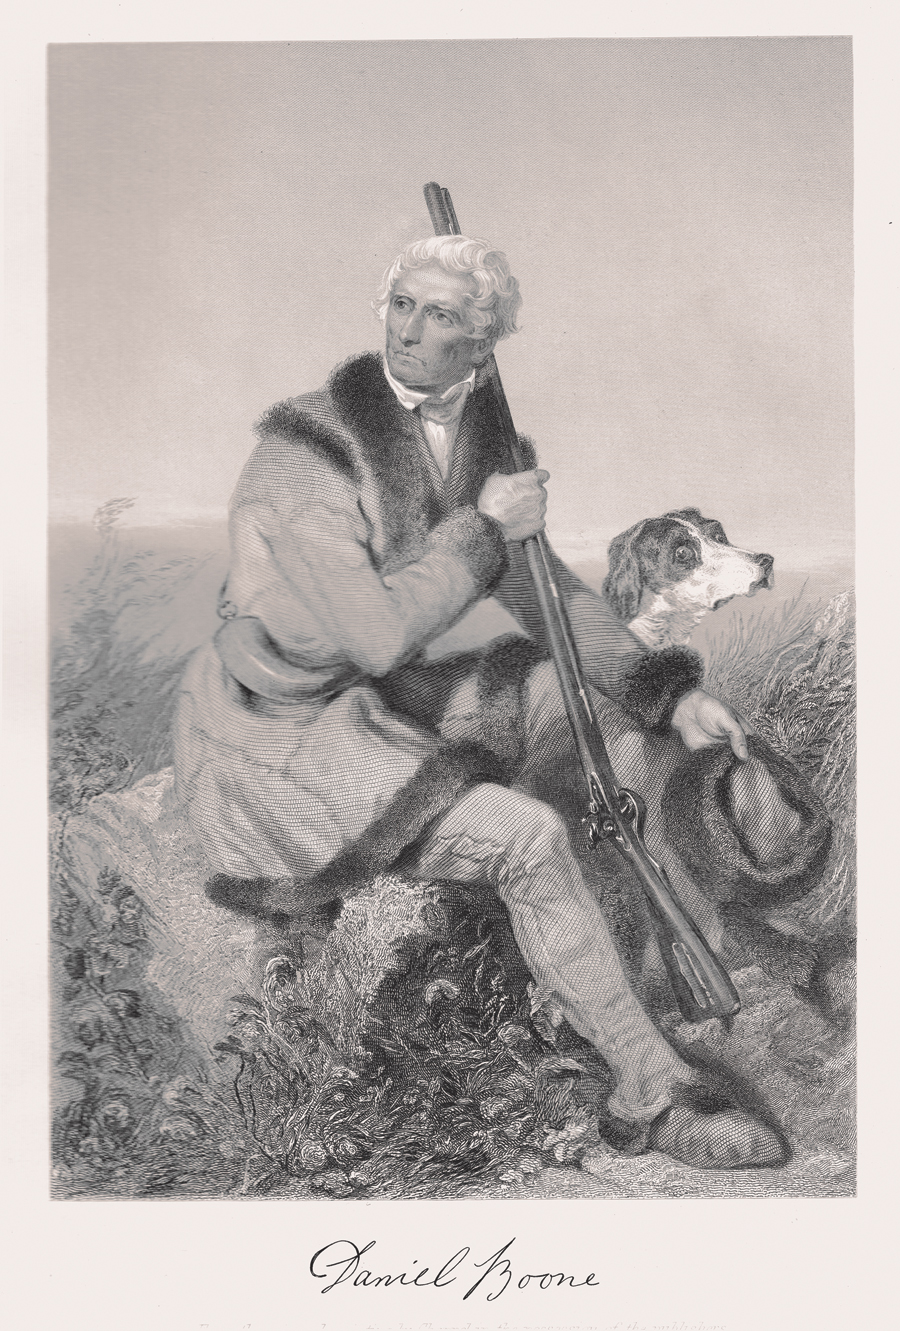 Daniel Boone: Passing the Torch - True West Magazine